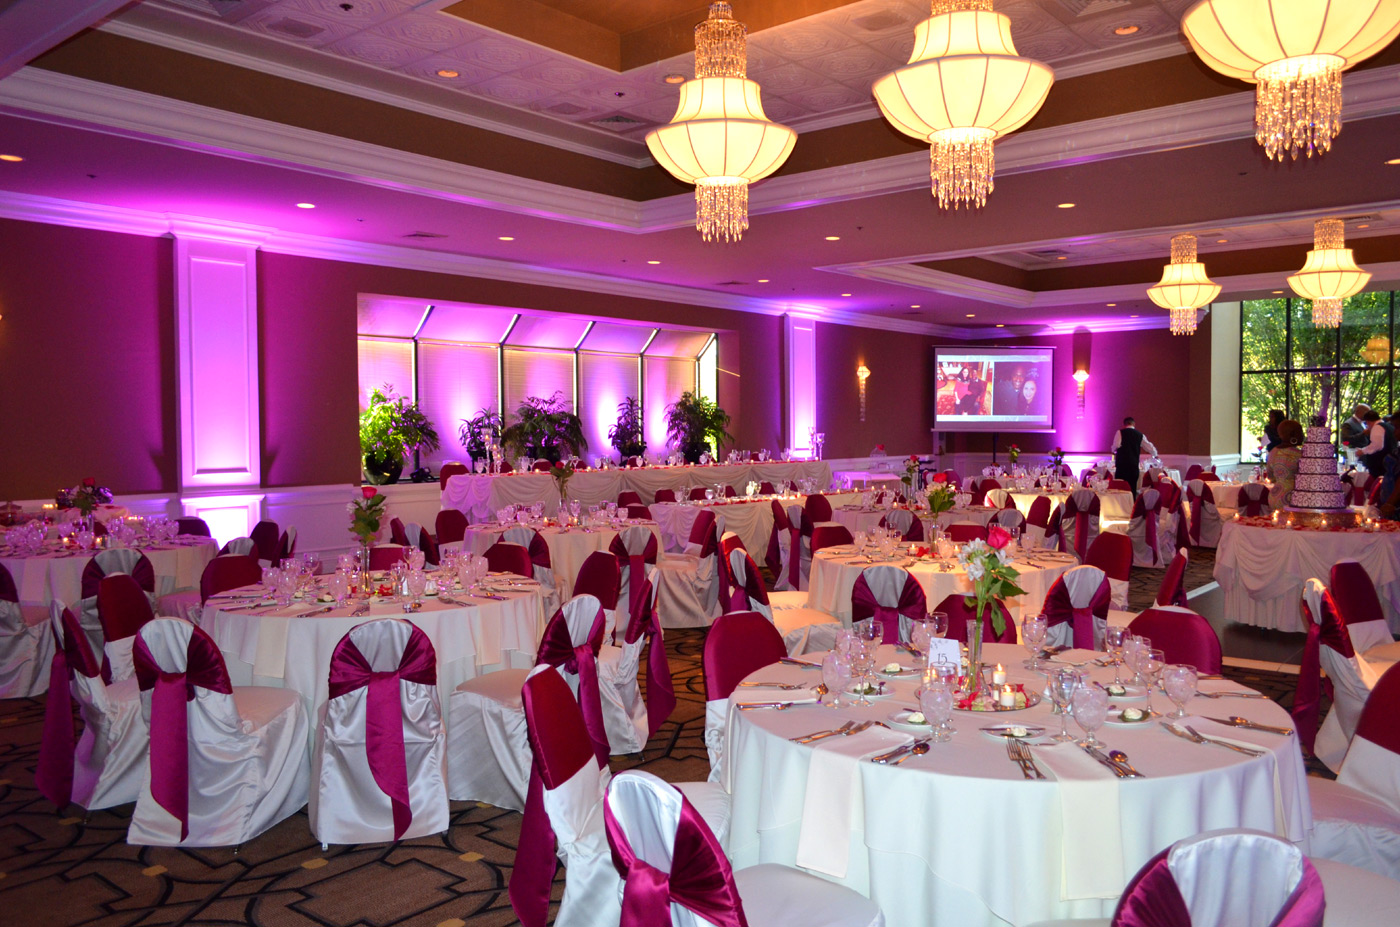 Concorde Banquets Uplighting by Endless Entertainment (1)